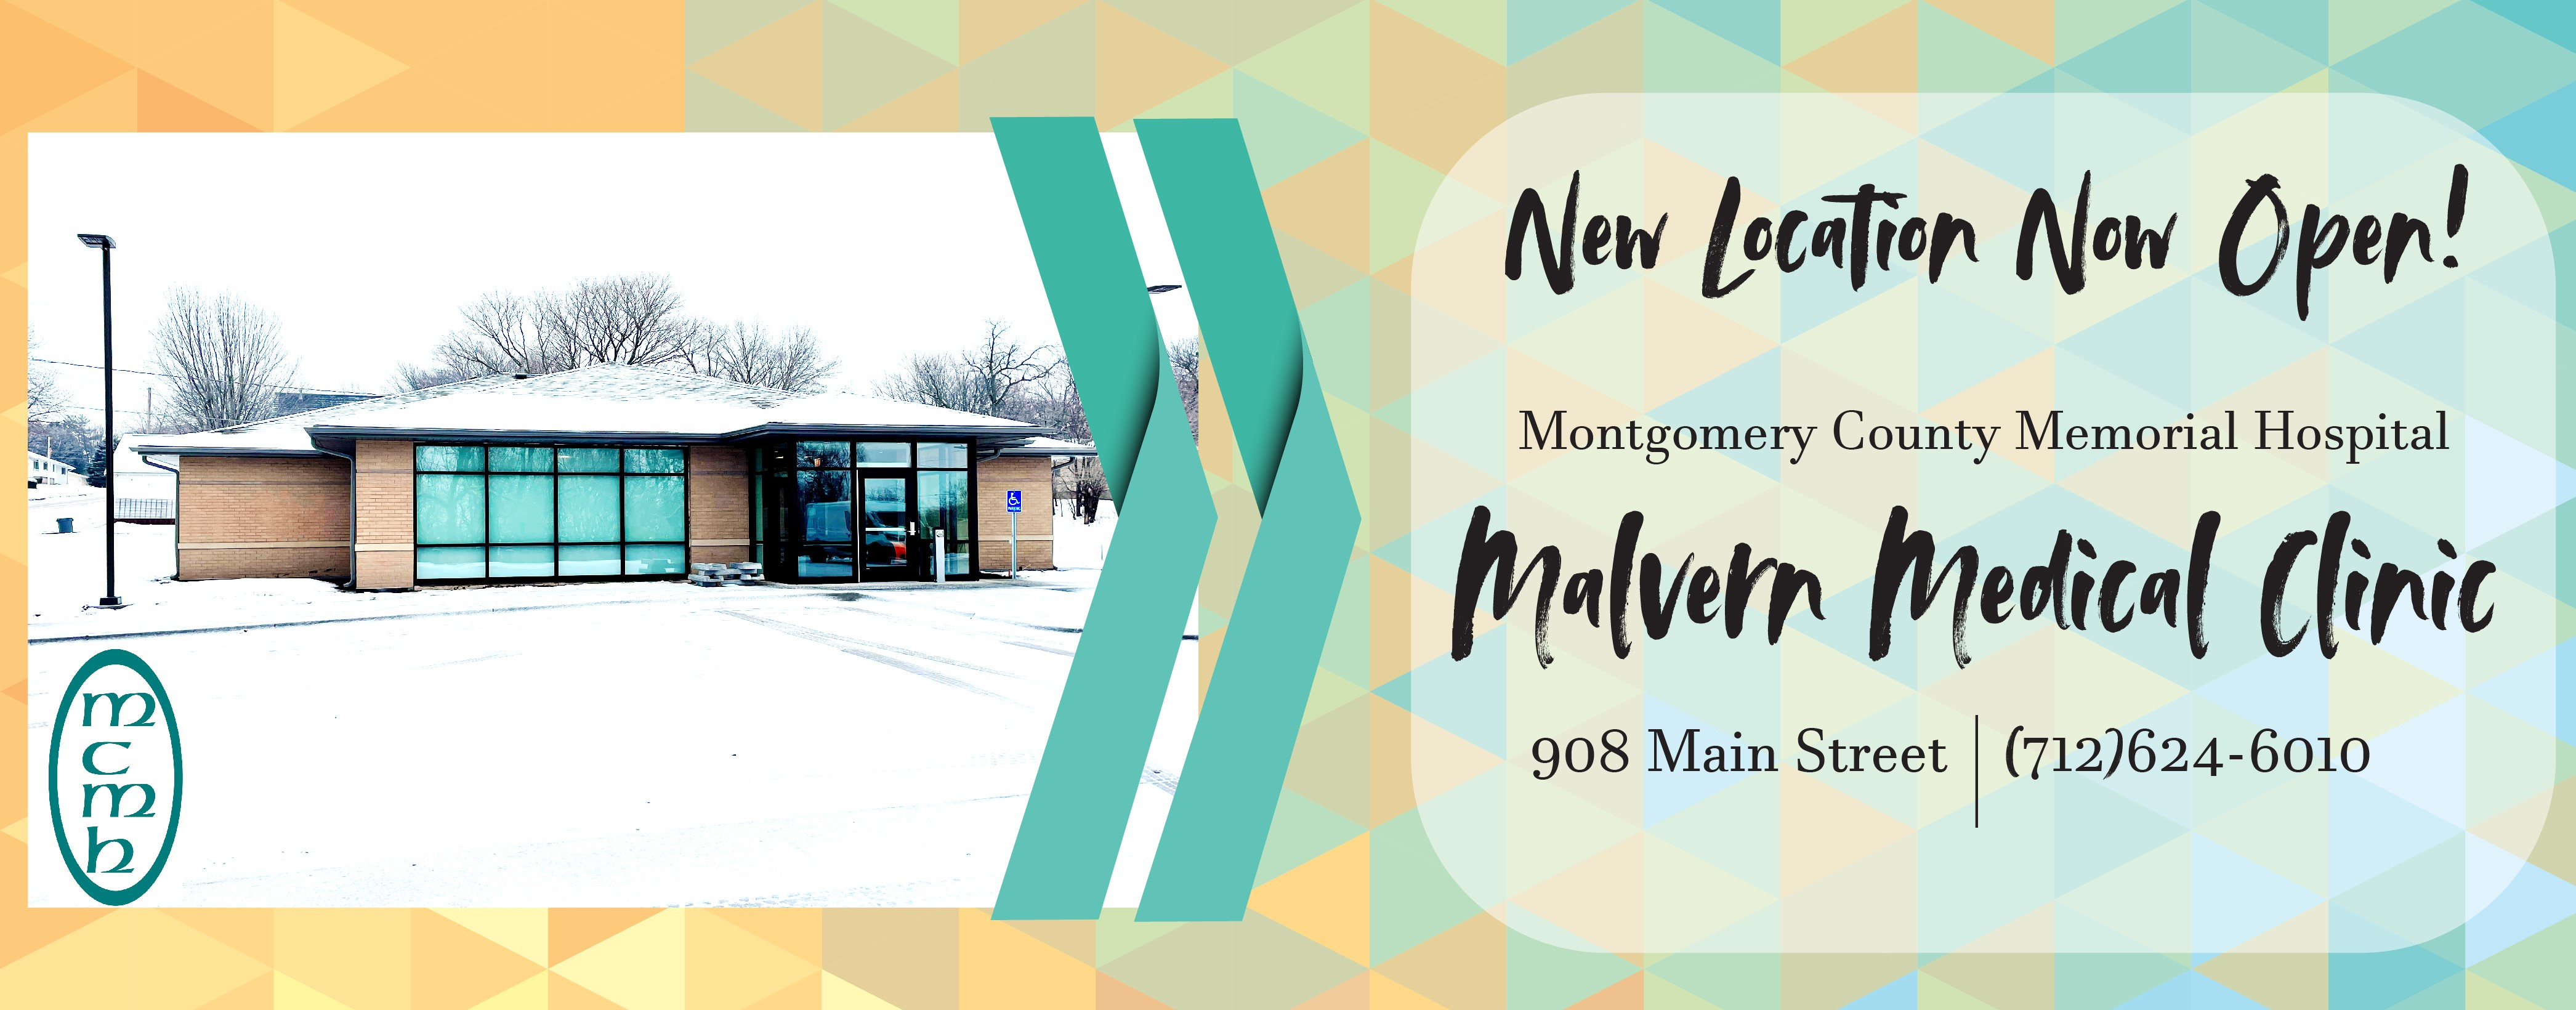 New Malvern Medical Clinic location Now Open!